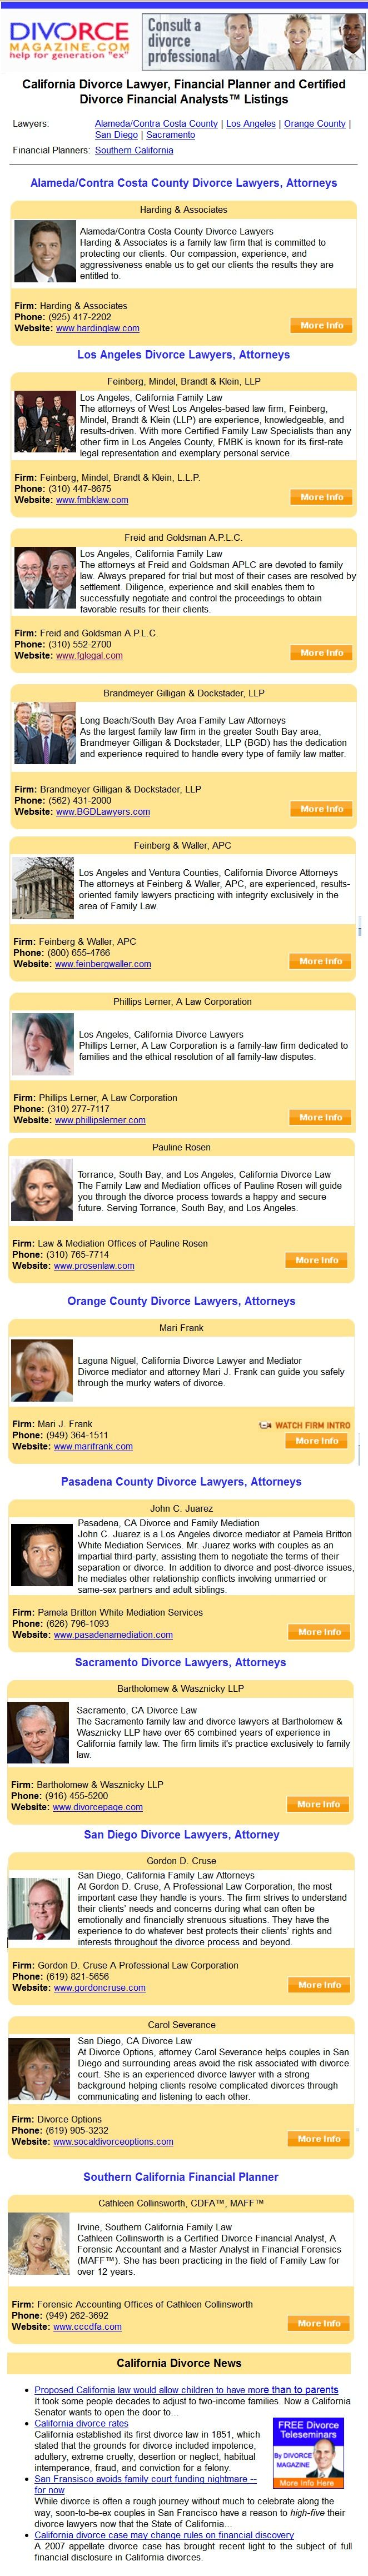 219 best divorce magazine images on pinterest magazine divorce california divorce magazine provides resources for the state of california on divorce divorce law solutioingenieria Gallery